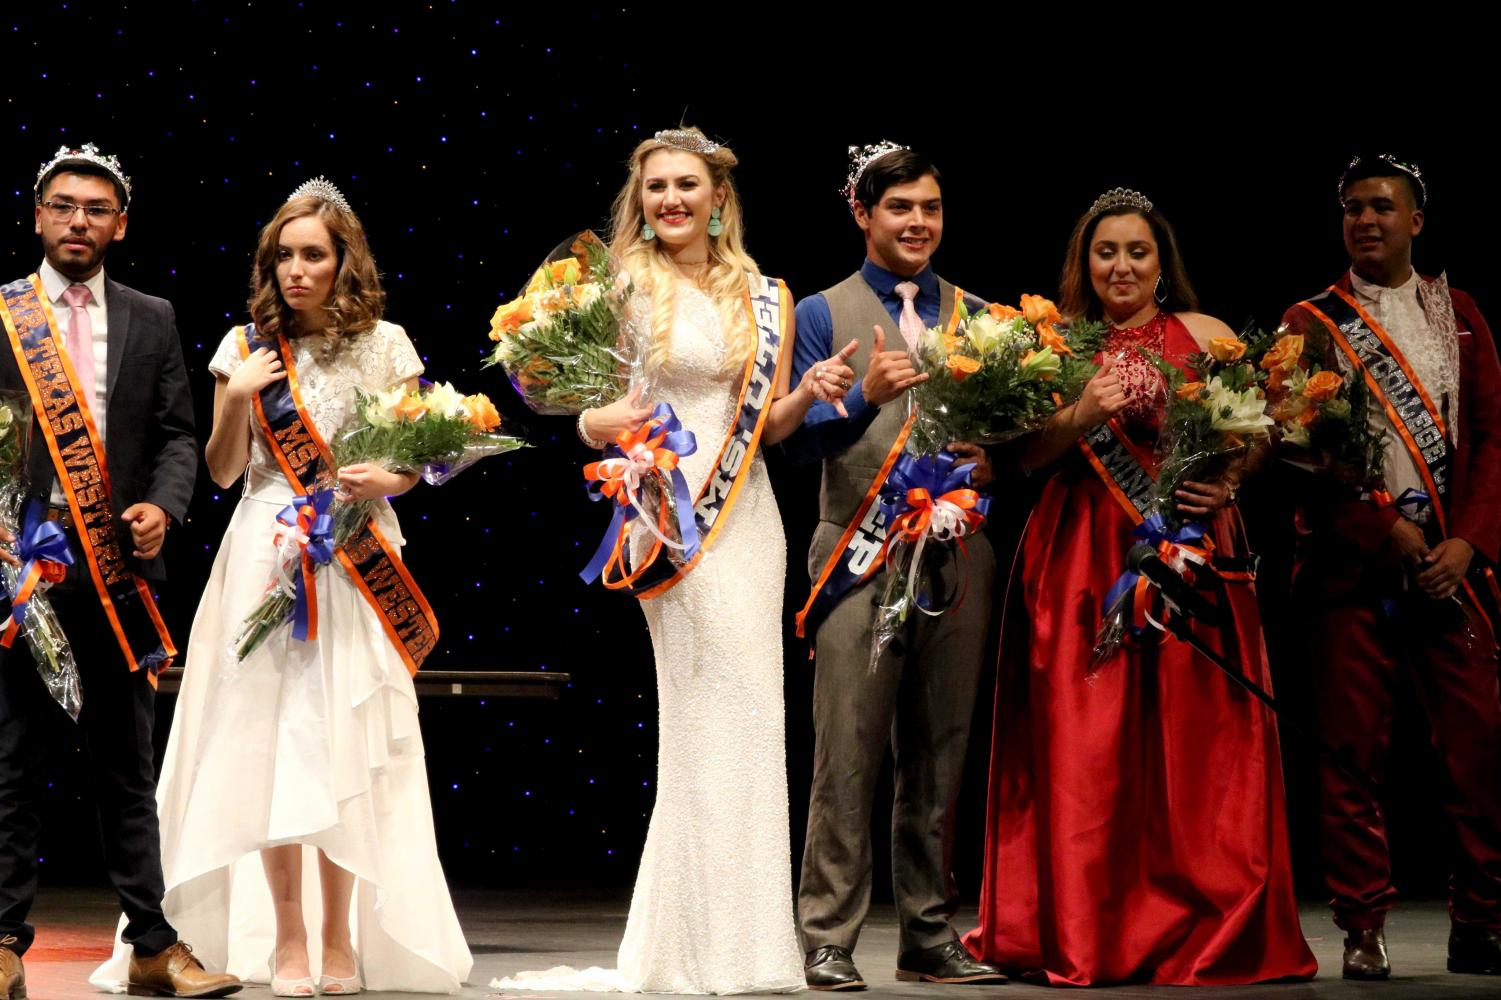 utep crowns king and queen at annual homecoming pageant